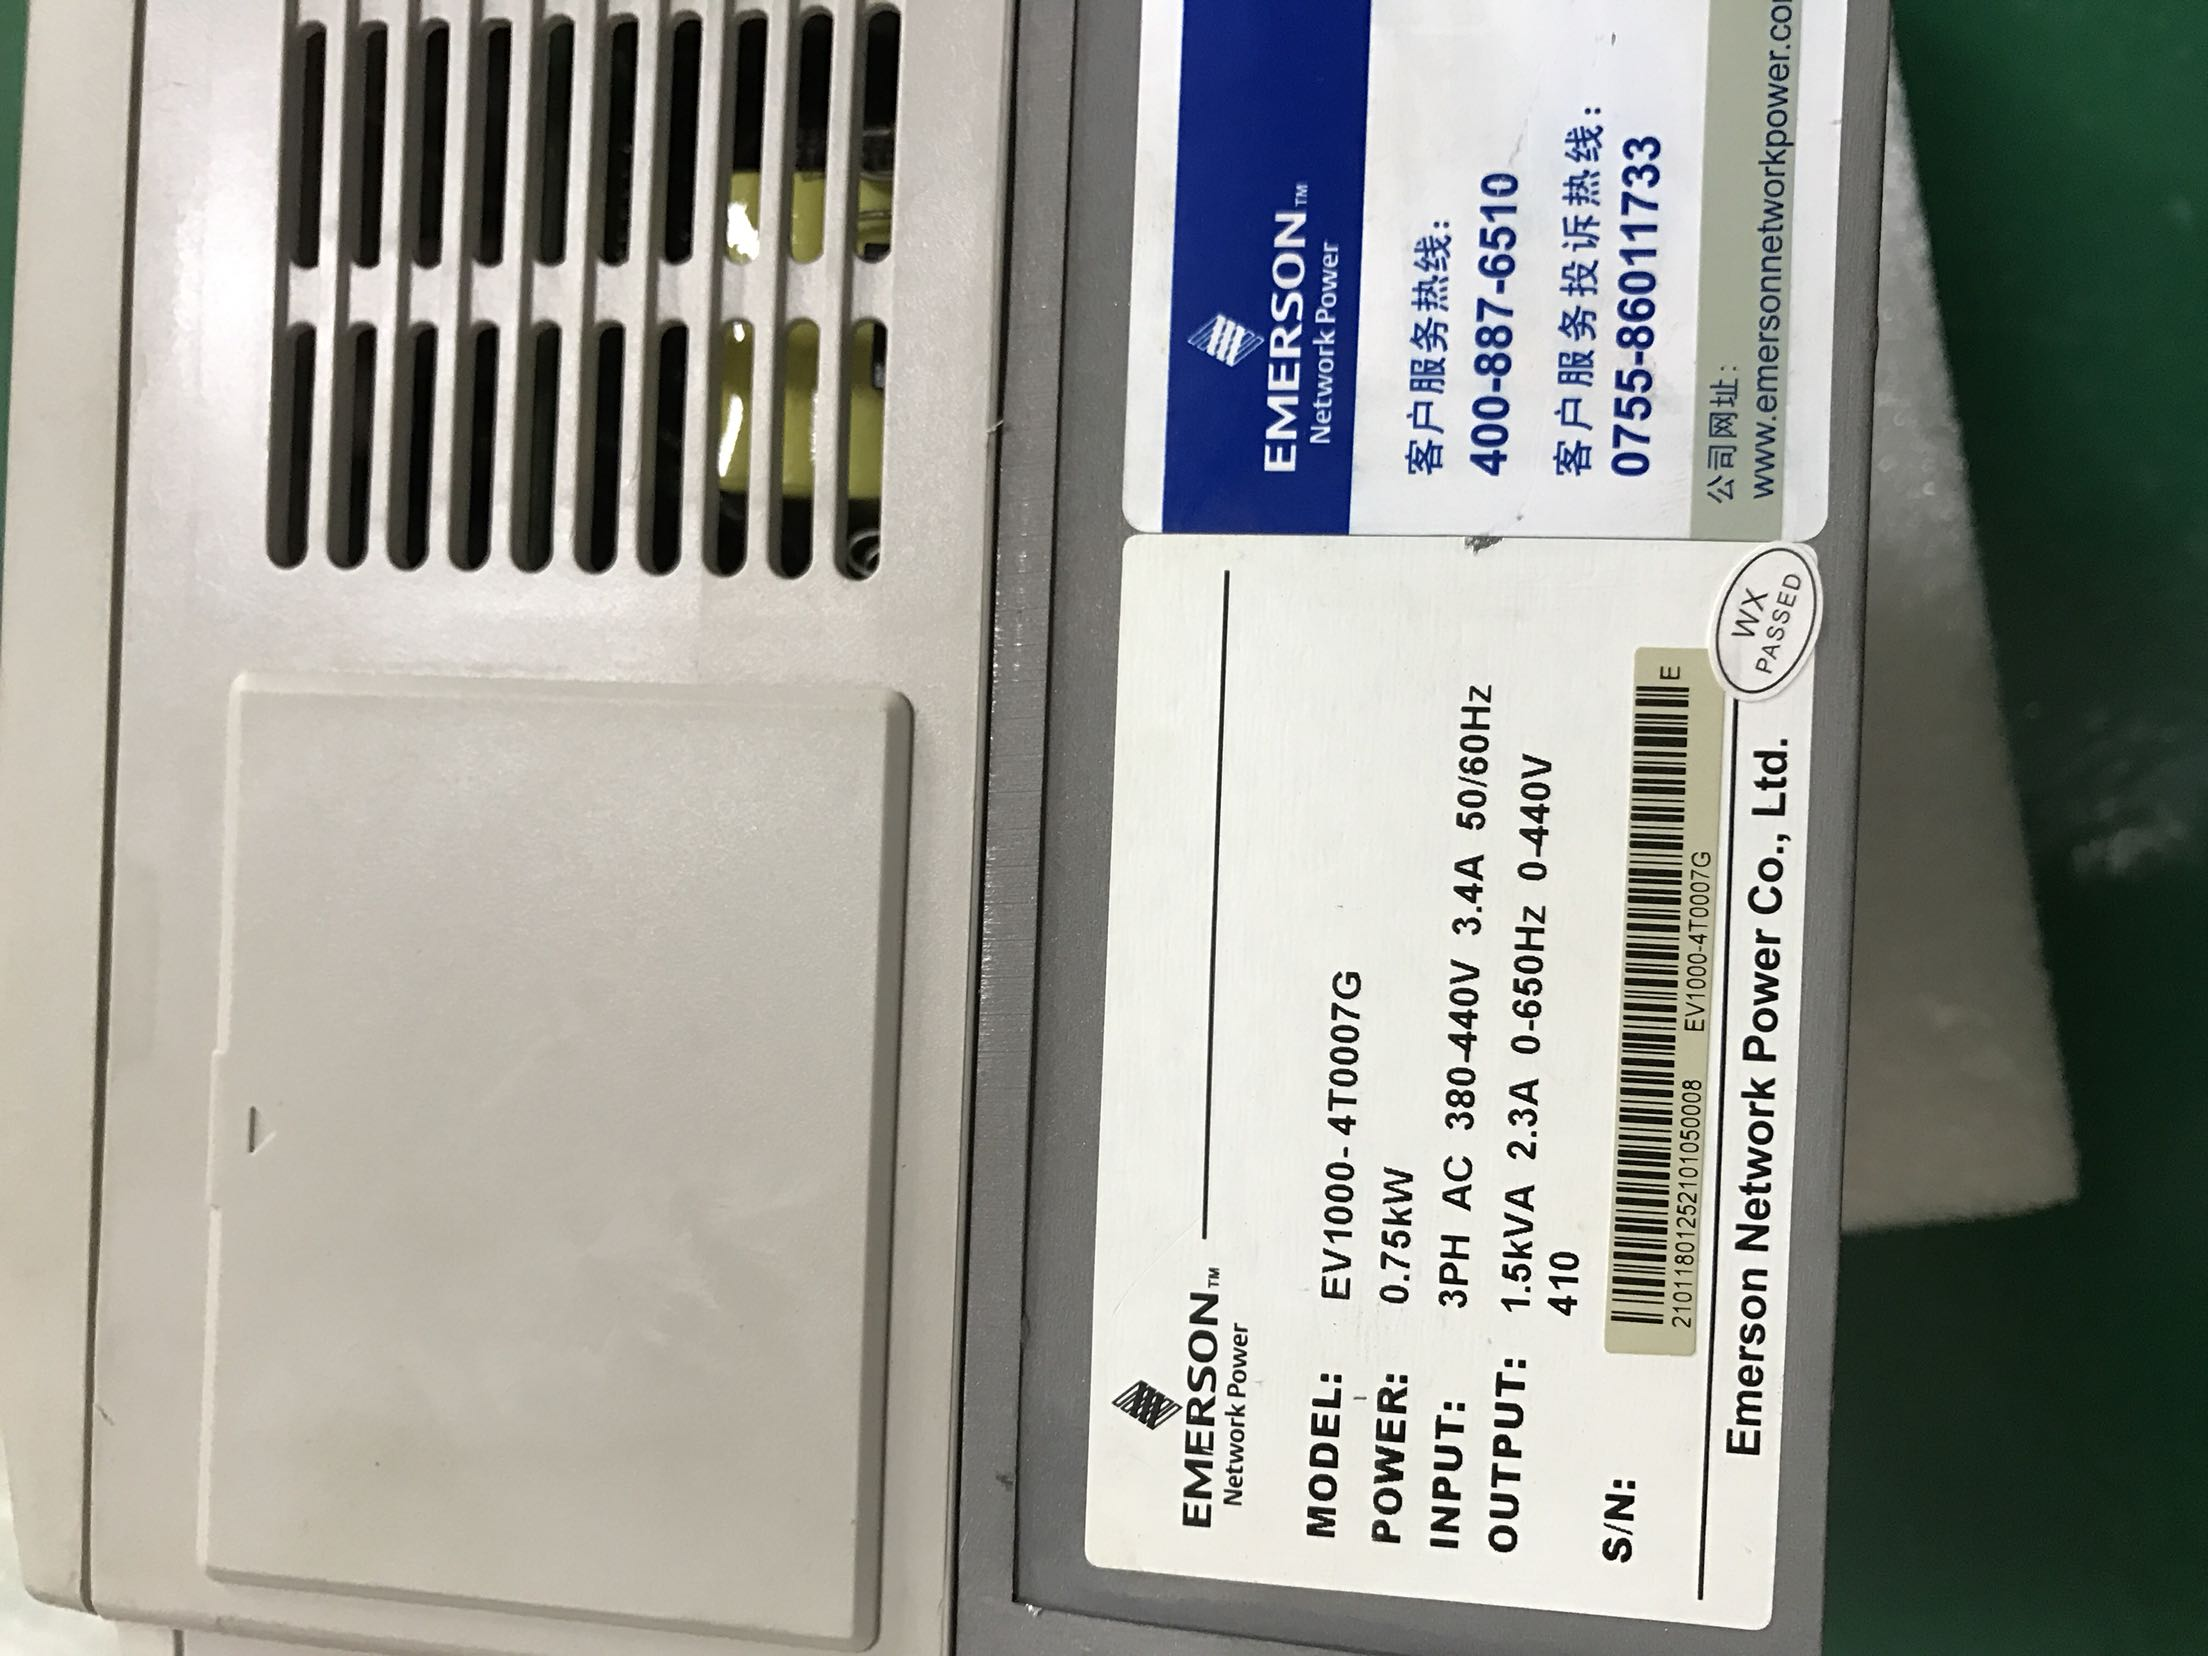 emerson inverter EV1000-4T007G fortegnelse